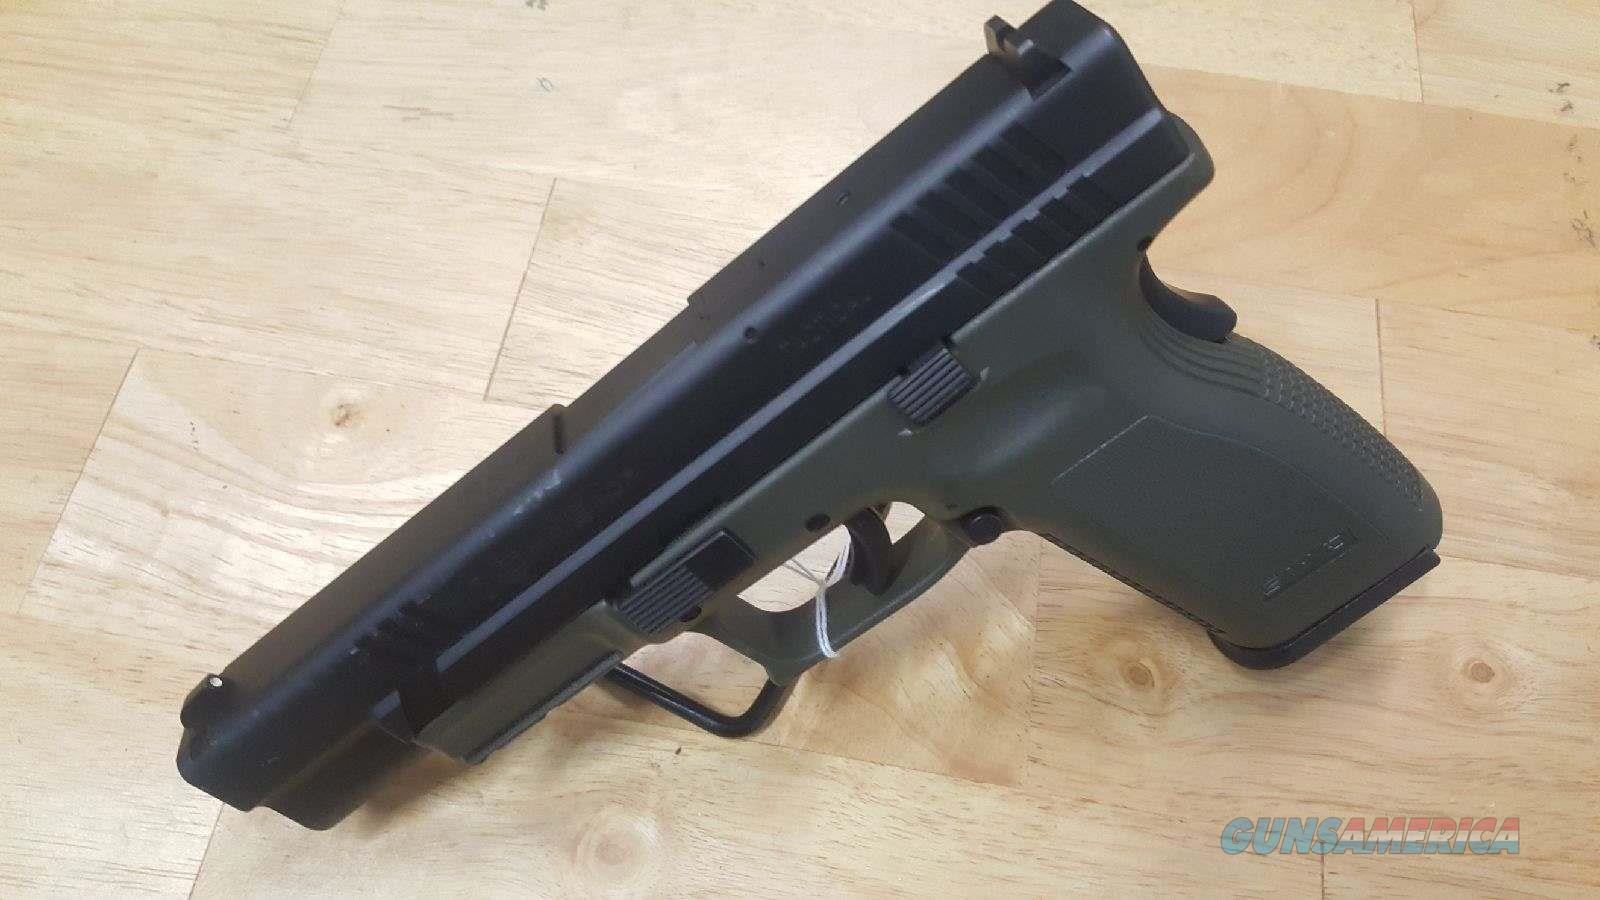 Springfield XD Tactical Od Green .45acp W/2 Mags - Used  Guns > Pistols > Springfield Armory Pistols > XD (eXtreme Duty)